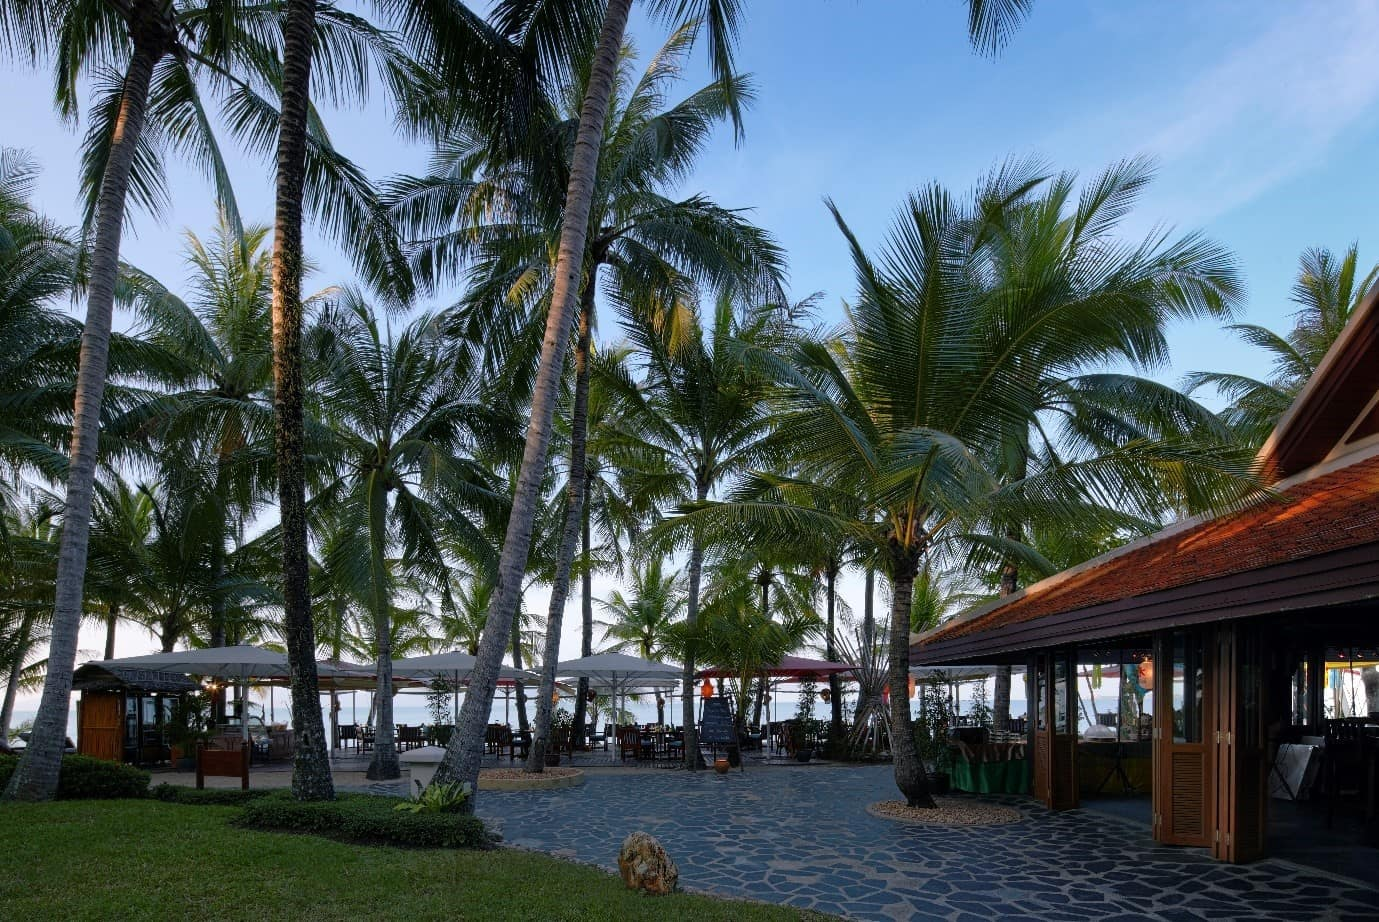 View of the beach with palm tree at Santiburi Beach Resort & Spa Koh Samui in Thailand